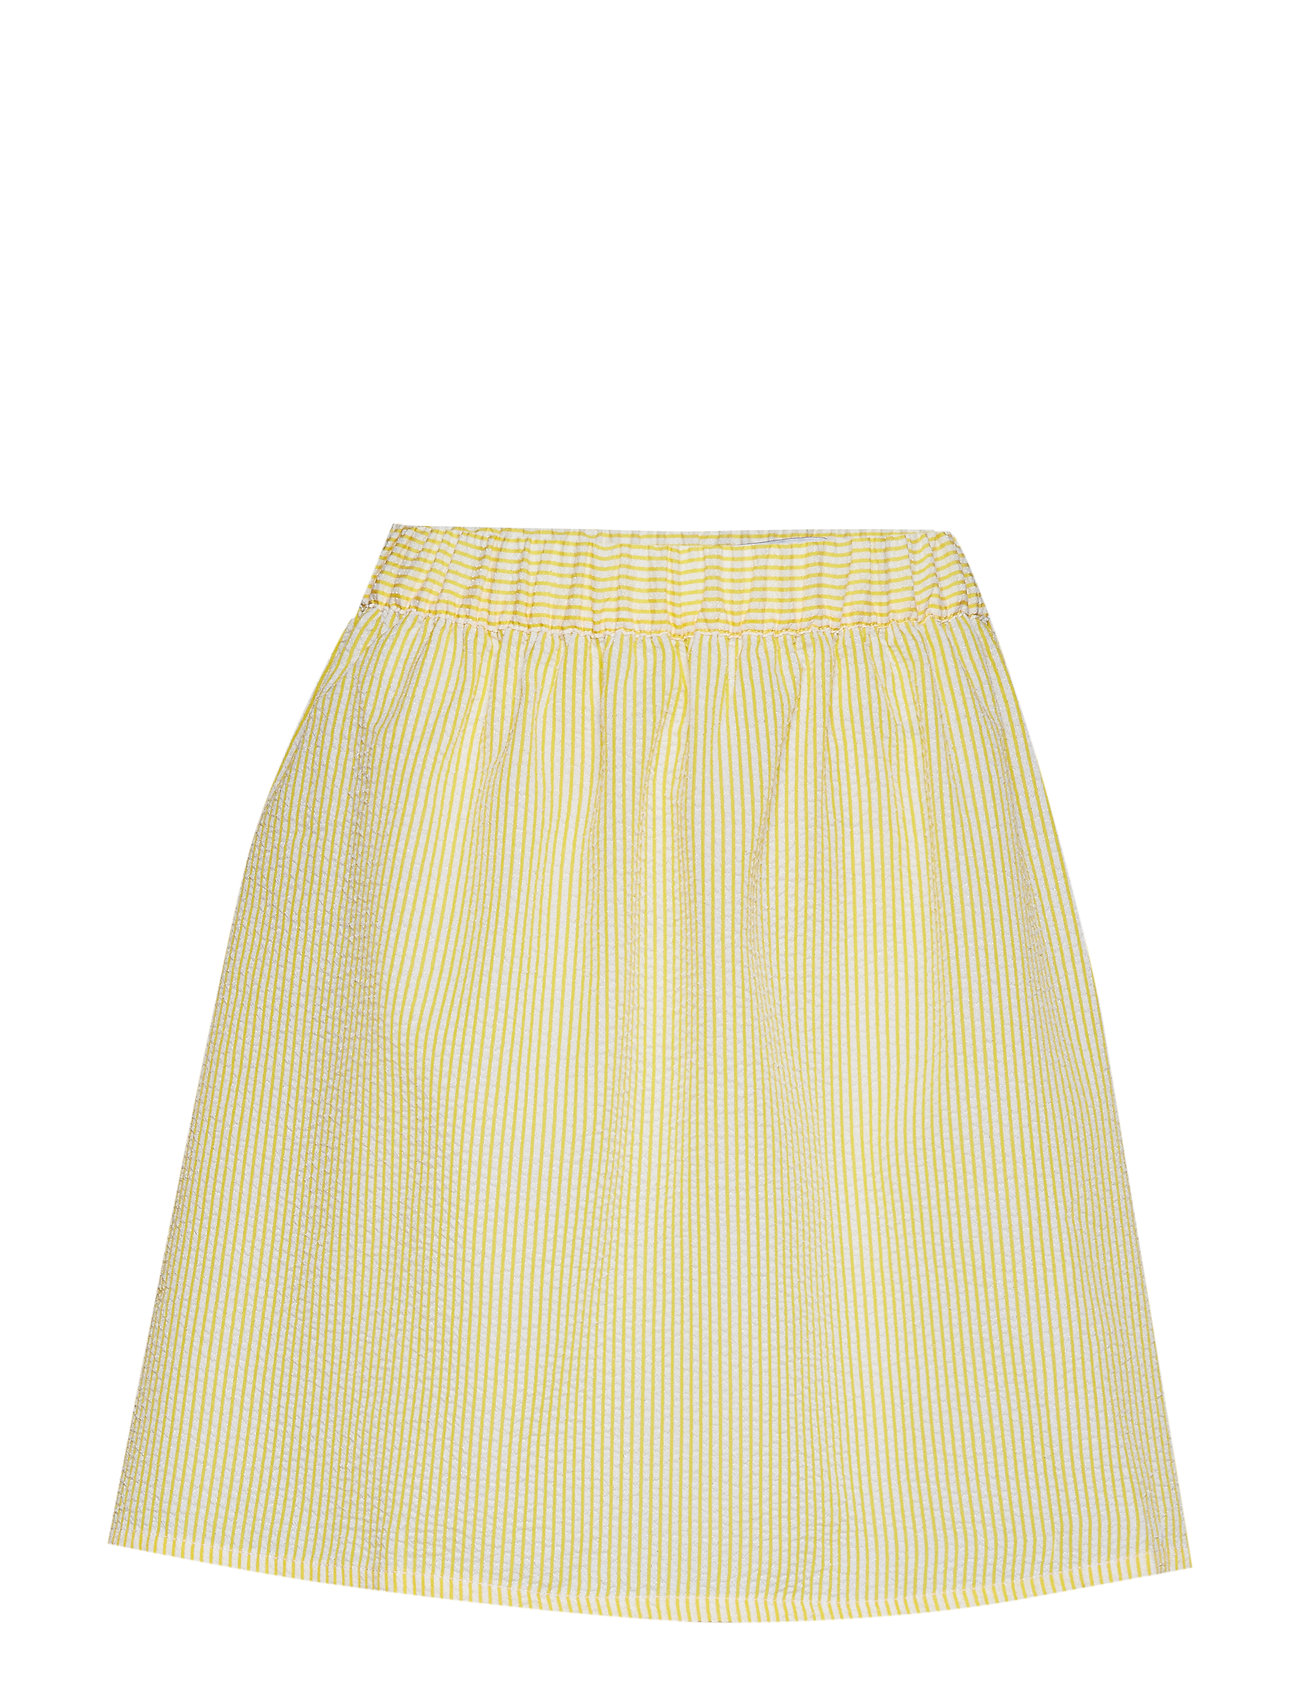 Ivyrevel MINI SKIRT - YELLOW STRIPE